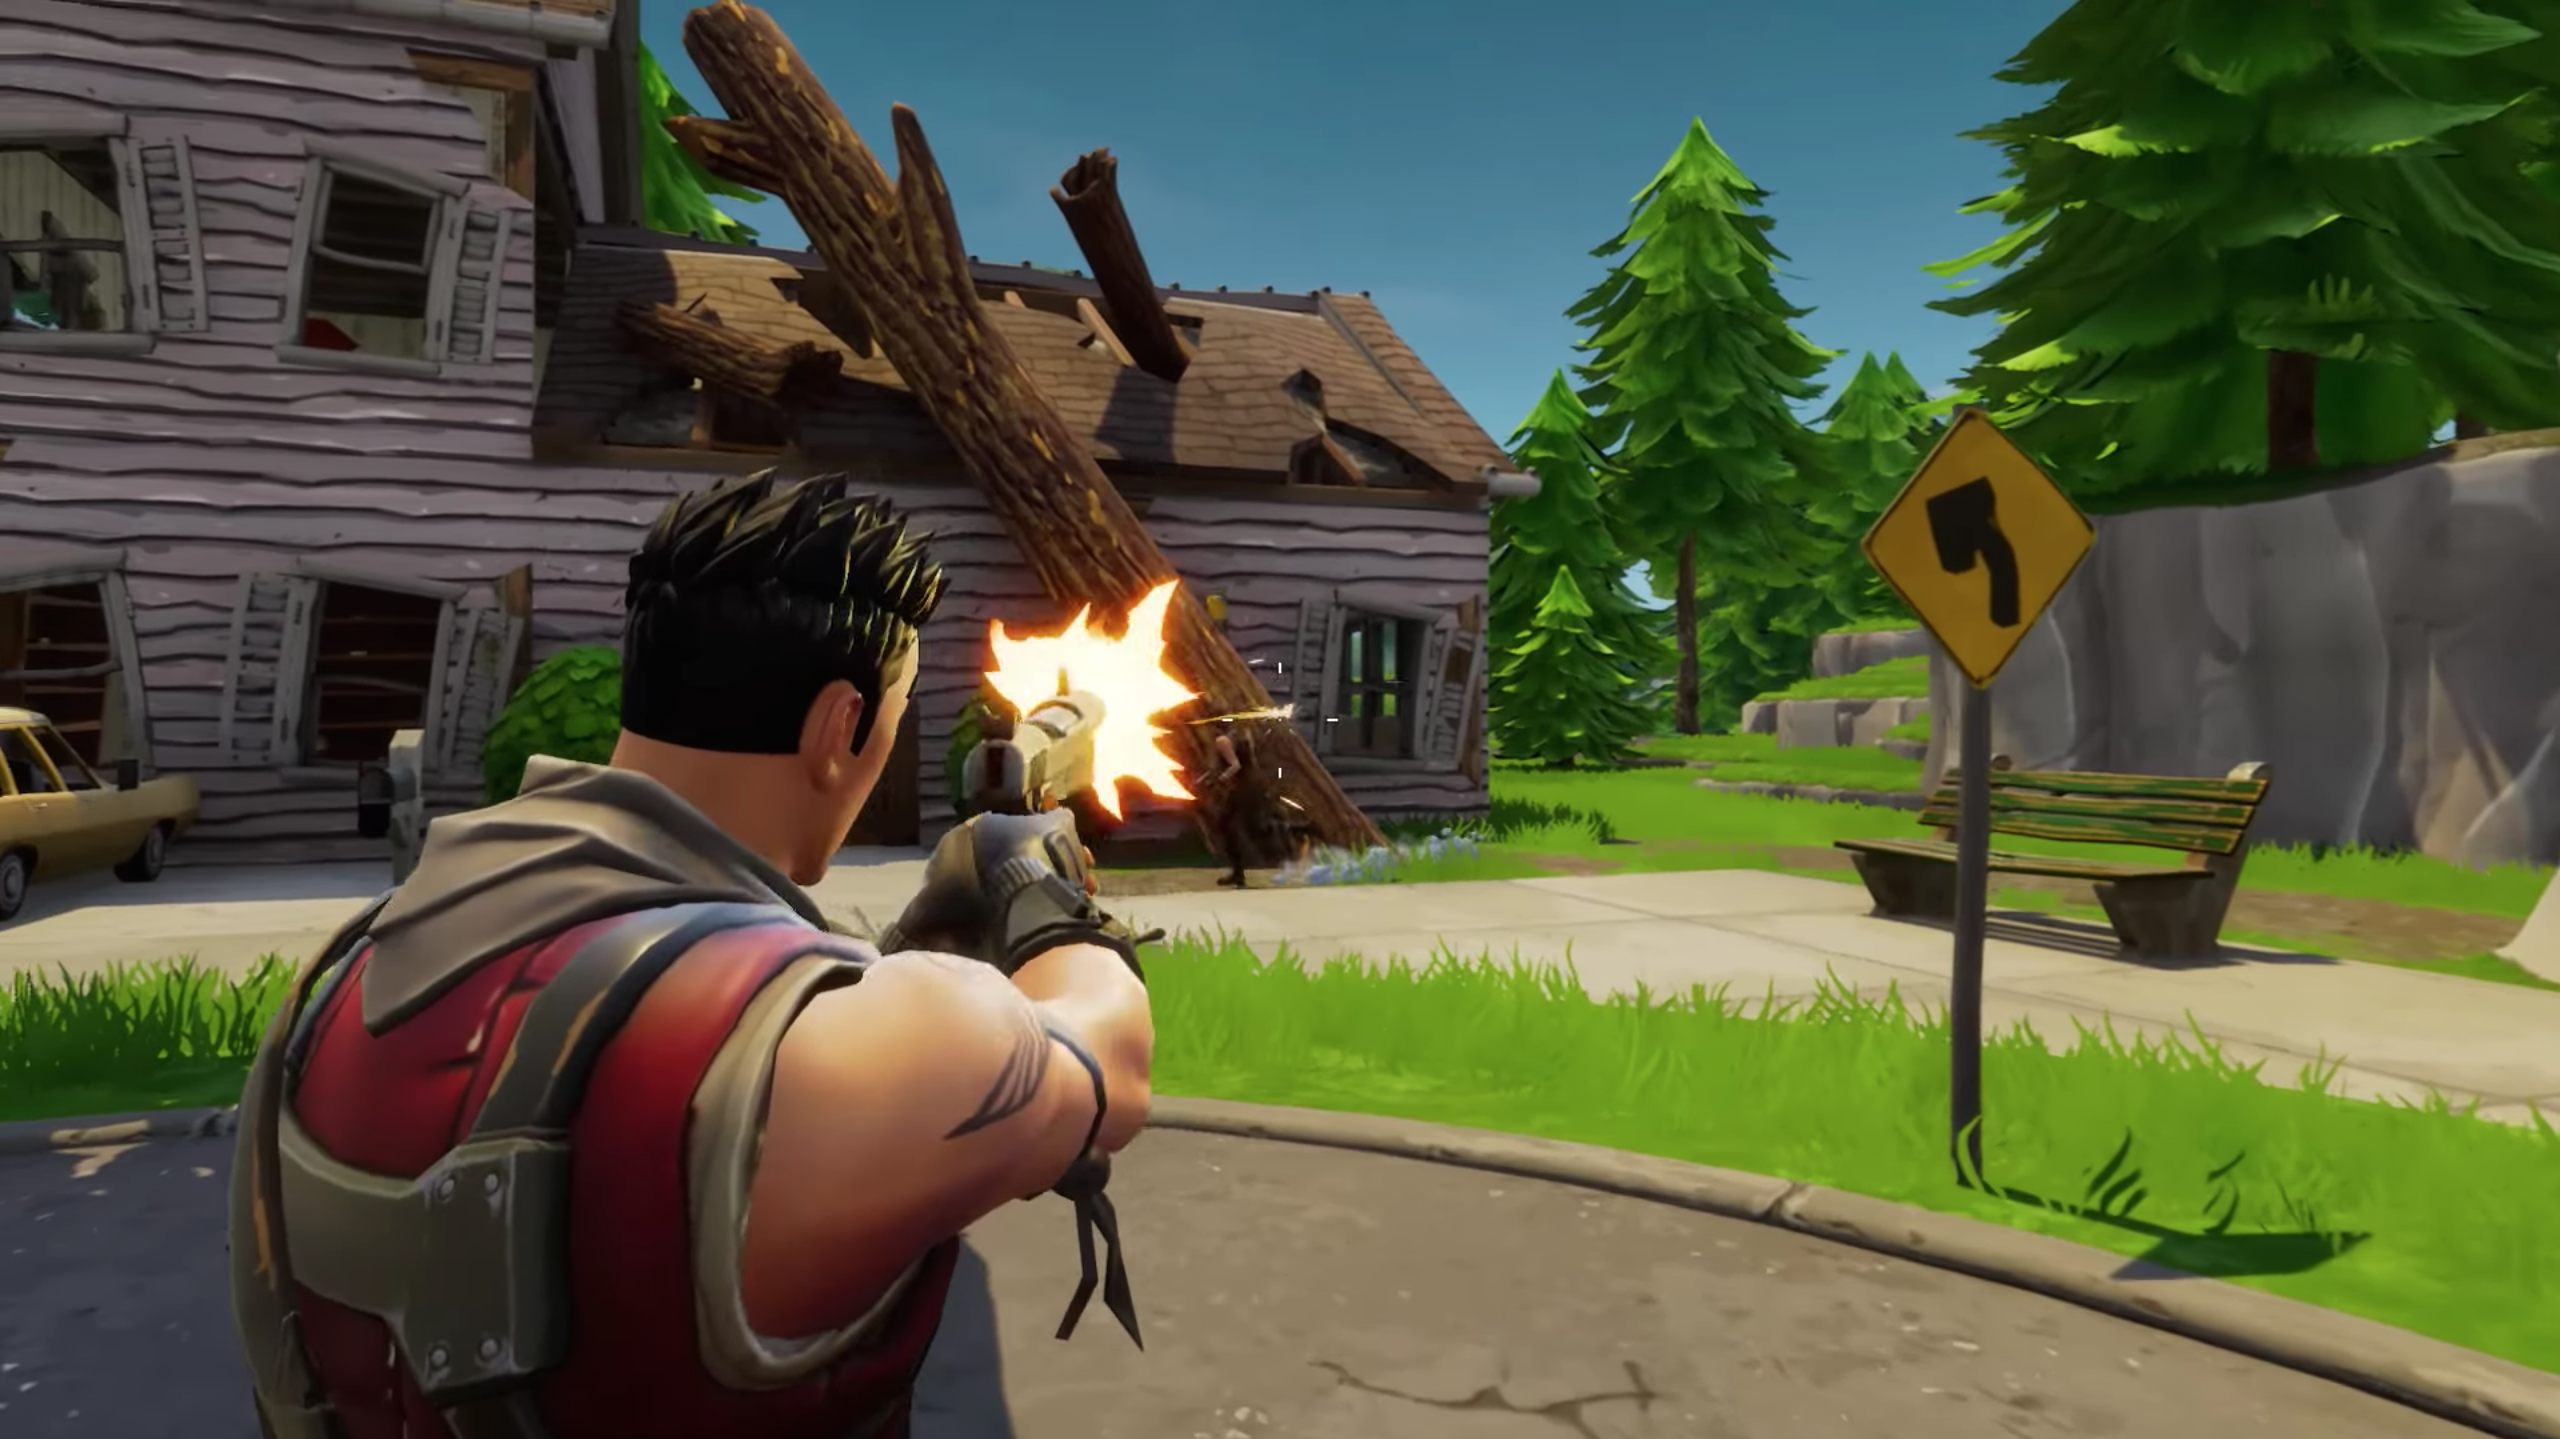 venturebeat.com - Jeff Grubb - Fortnite studio Epic wants to improve its hit with Amazon Web Services